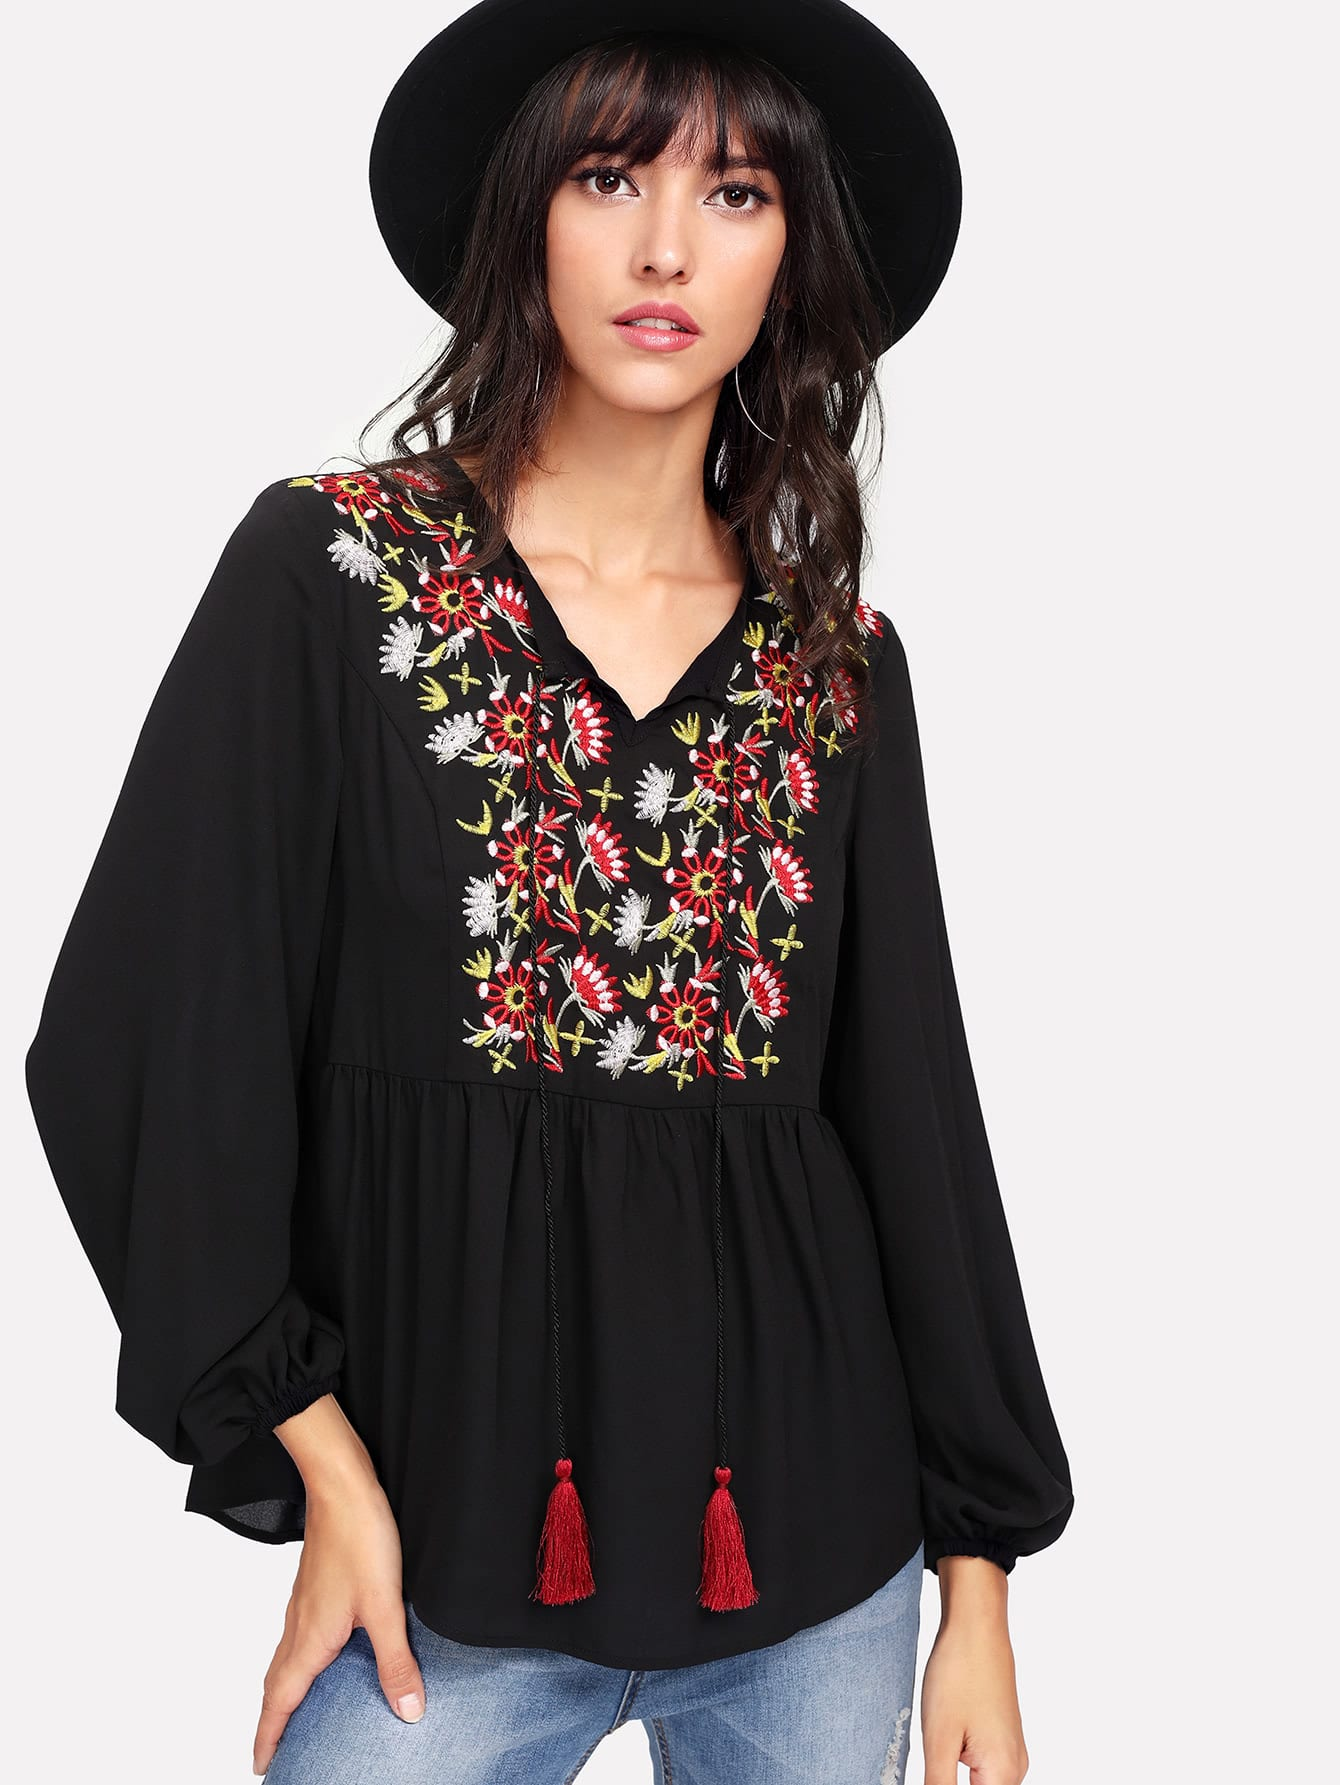 Flower Embroidered Yoke Smock Top embroidered yoke buttoned keyhole frill sleeve smock top